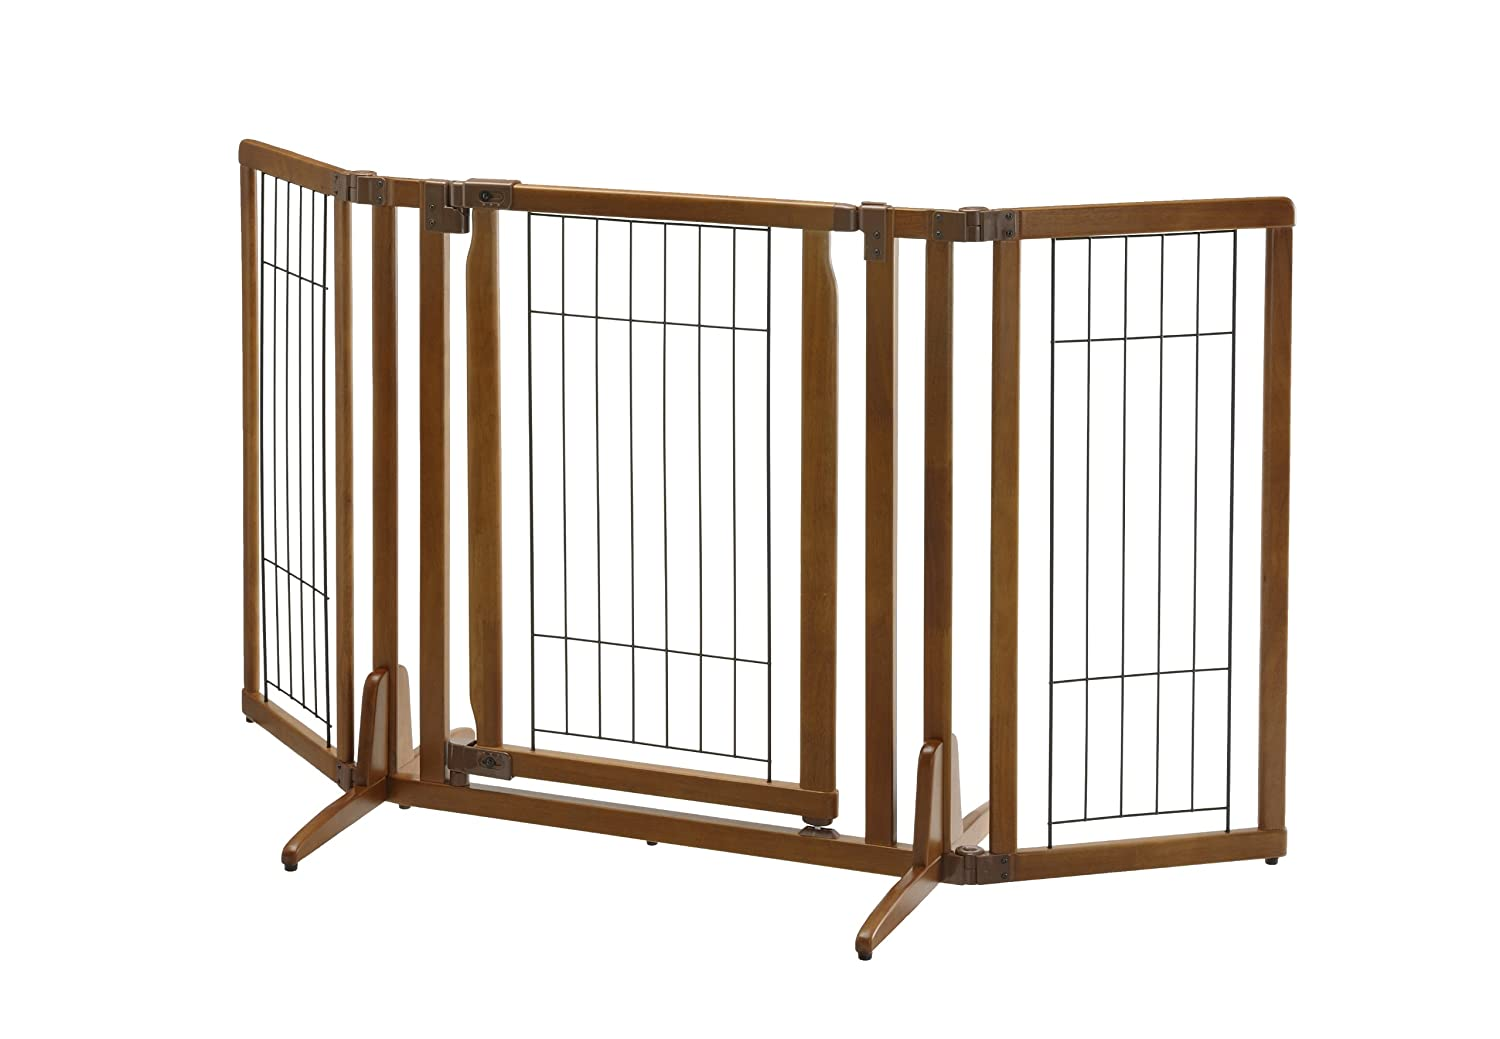 Superbe Amazon.com : Richell Premium Plus Freestanding Pet Gate With Door : Pet  Kennels : Pet Supplies